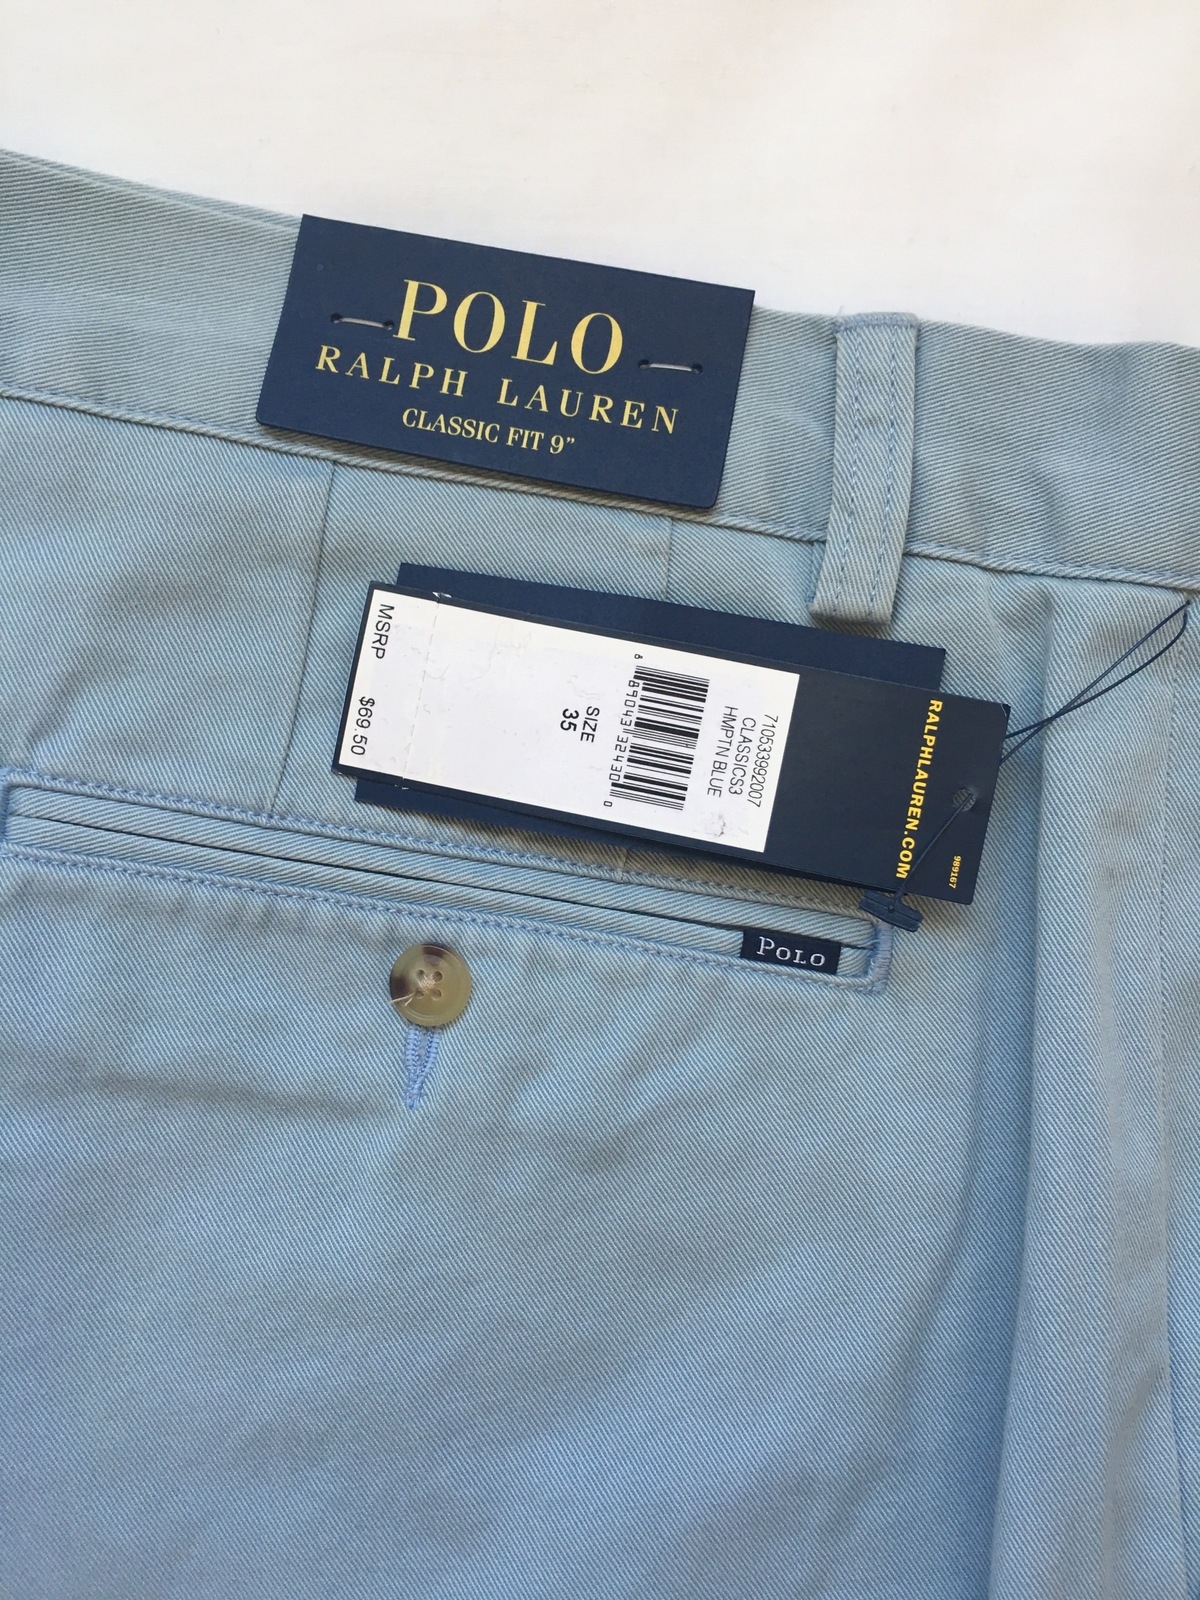 "NWT $69 Polo Ralph Lauren Classic Fit Chino 6/"" Shorts Mens 30 42 Navy Blue NEW"